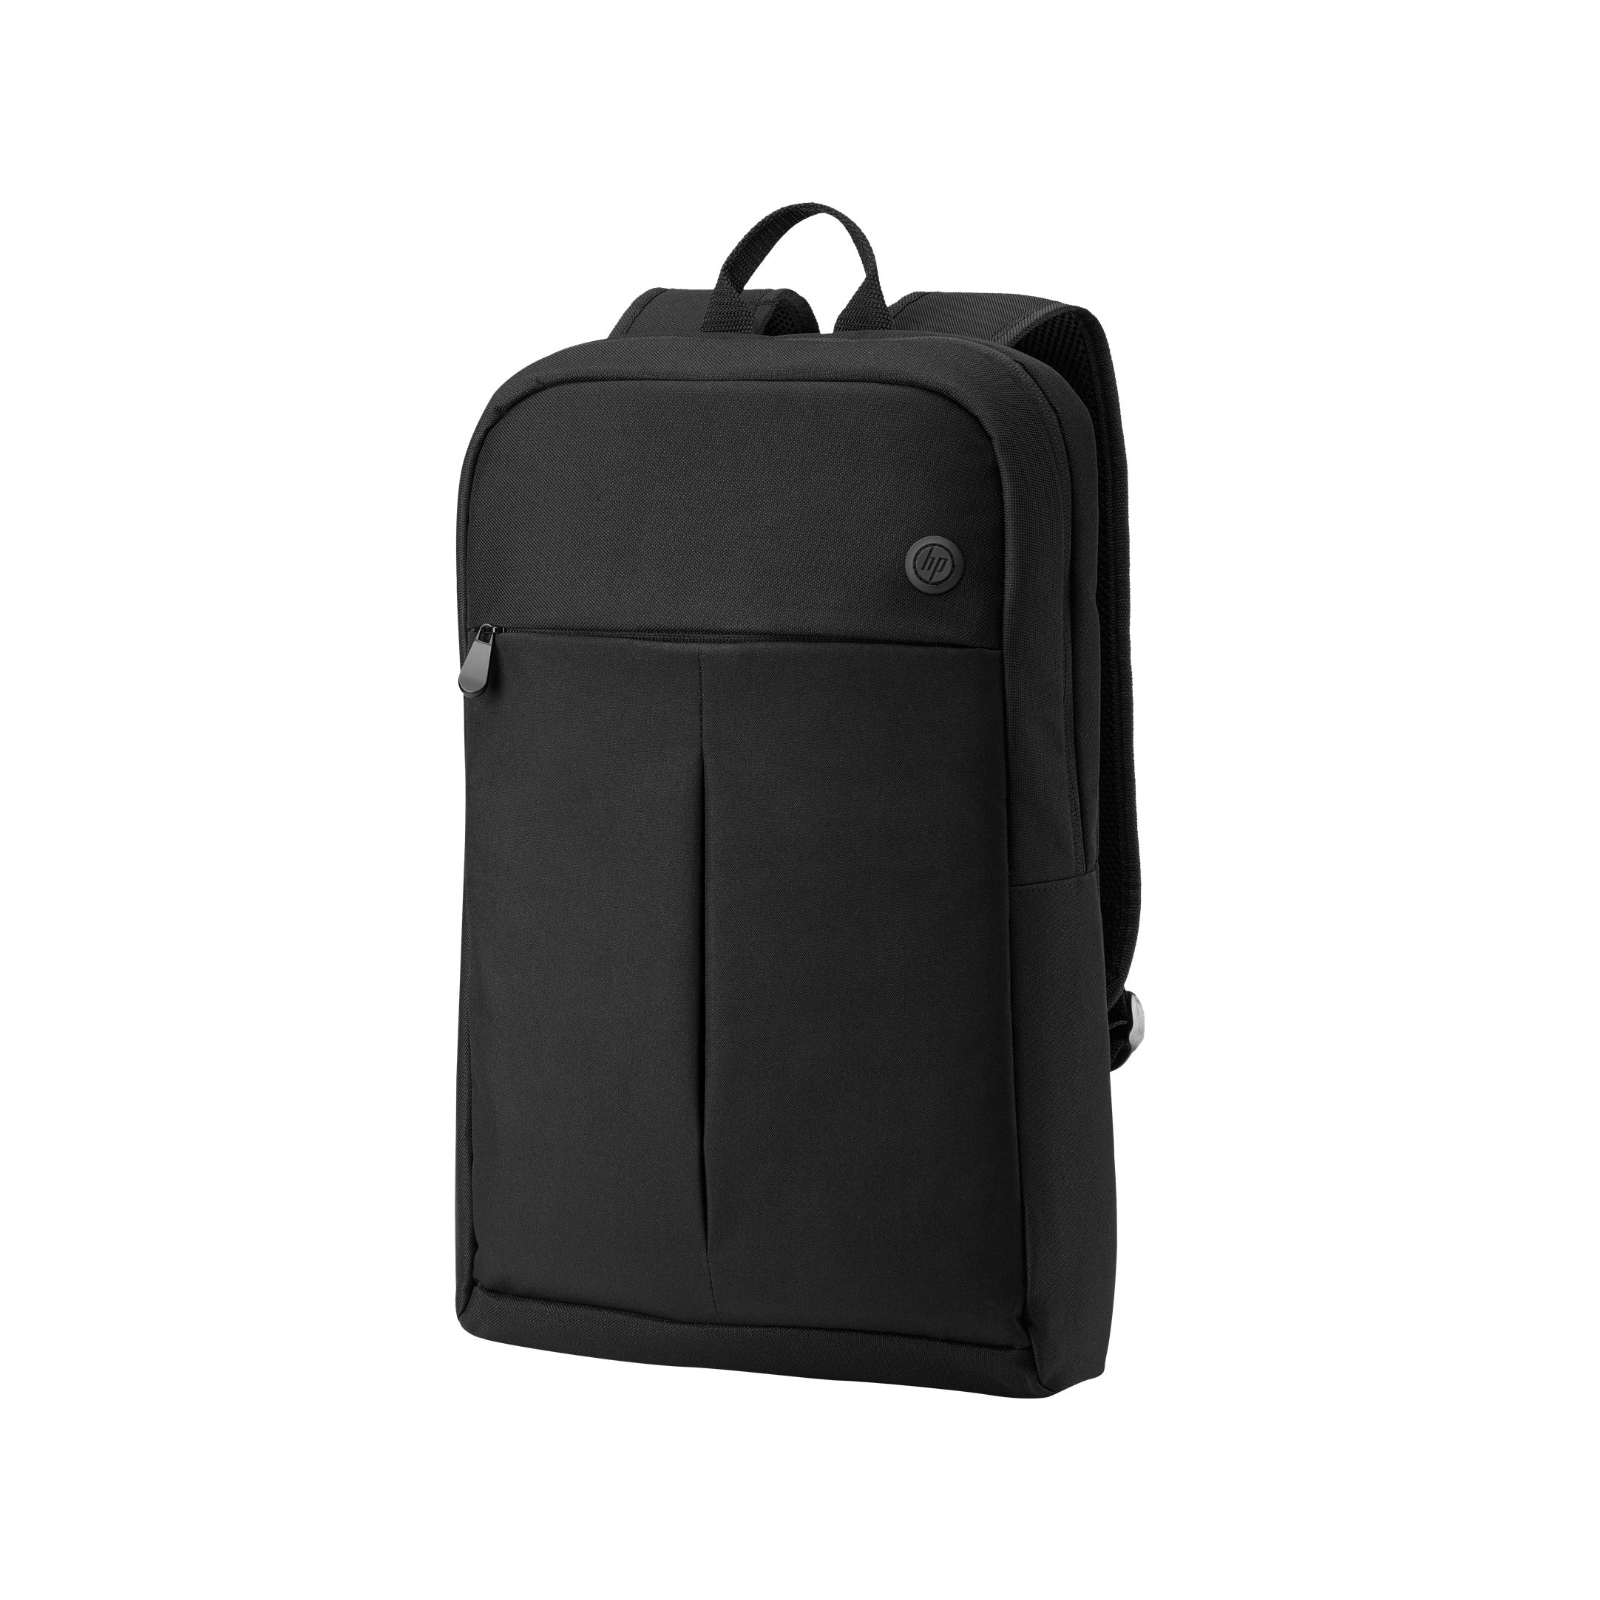 HPBACKPACK PRELUDE BLACK 15.6 INCH 1 YEAR CARRY IN WARRANTY